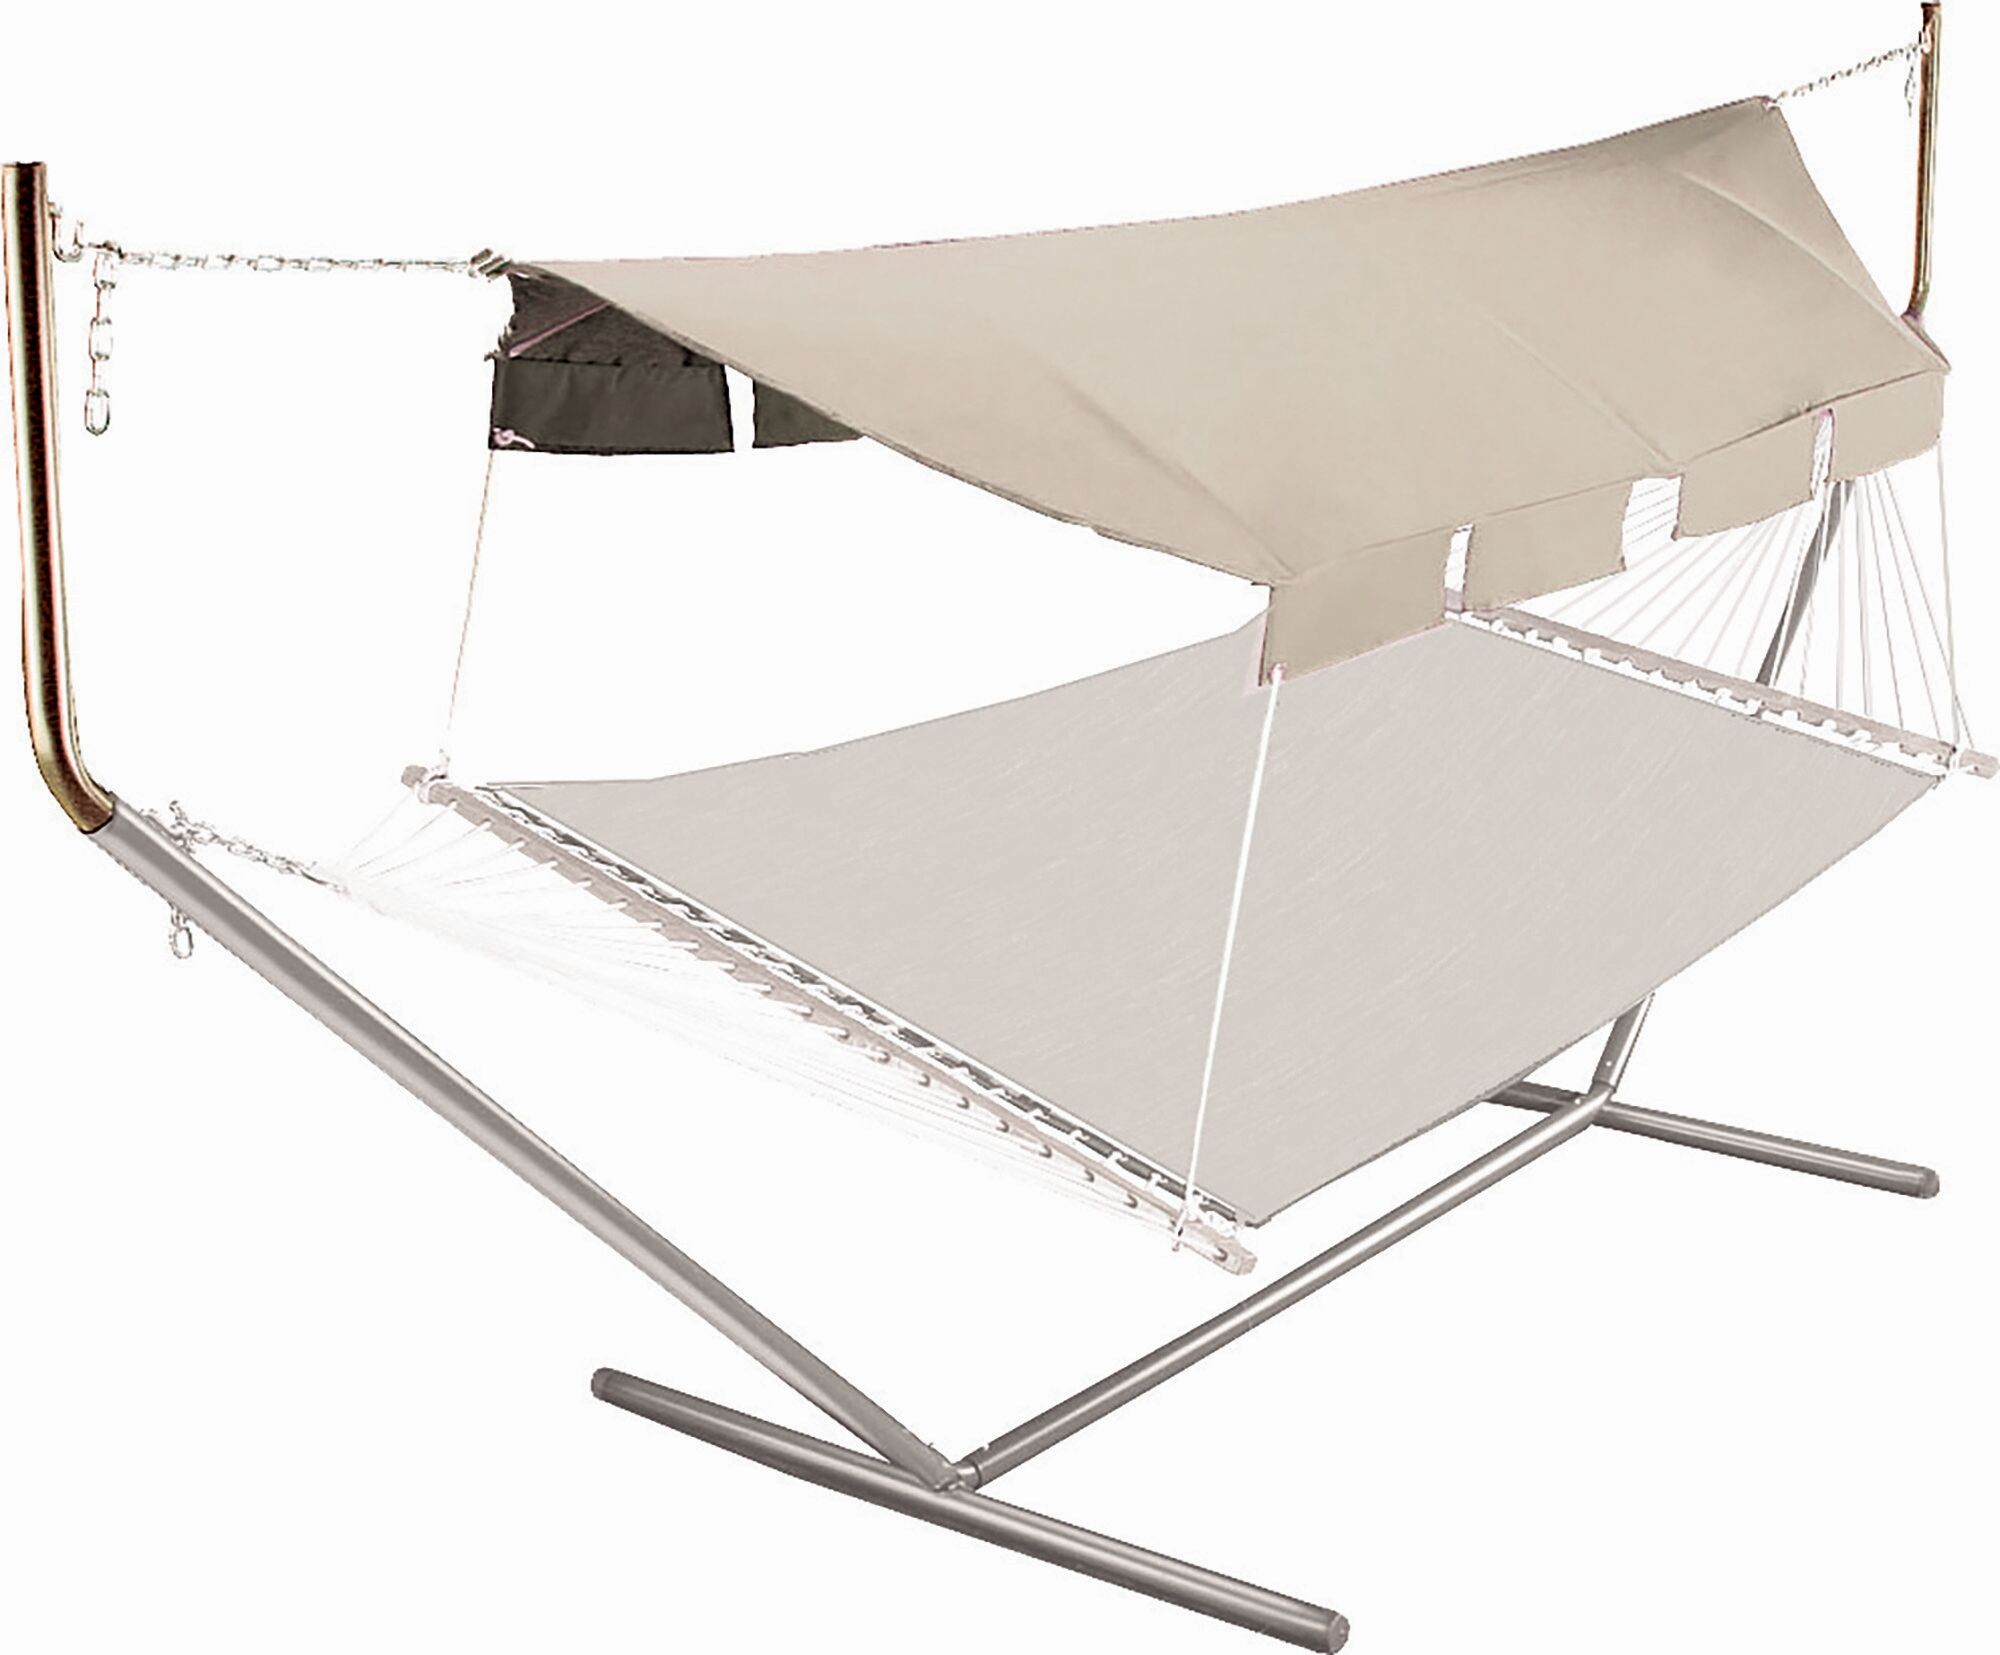 Edford Hammock Canopy Color: Taupe